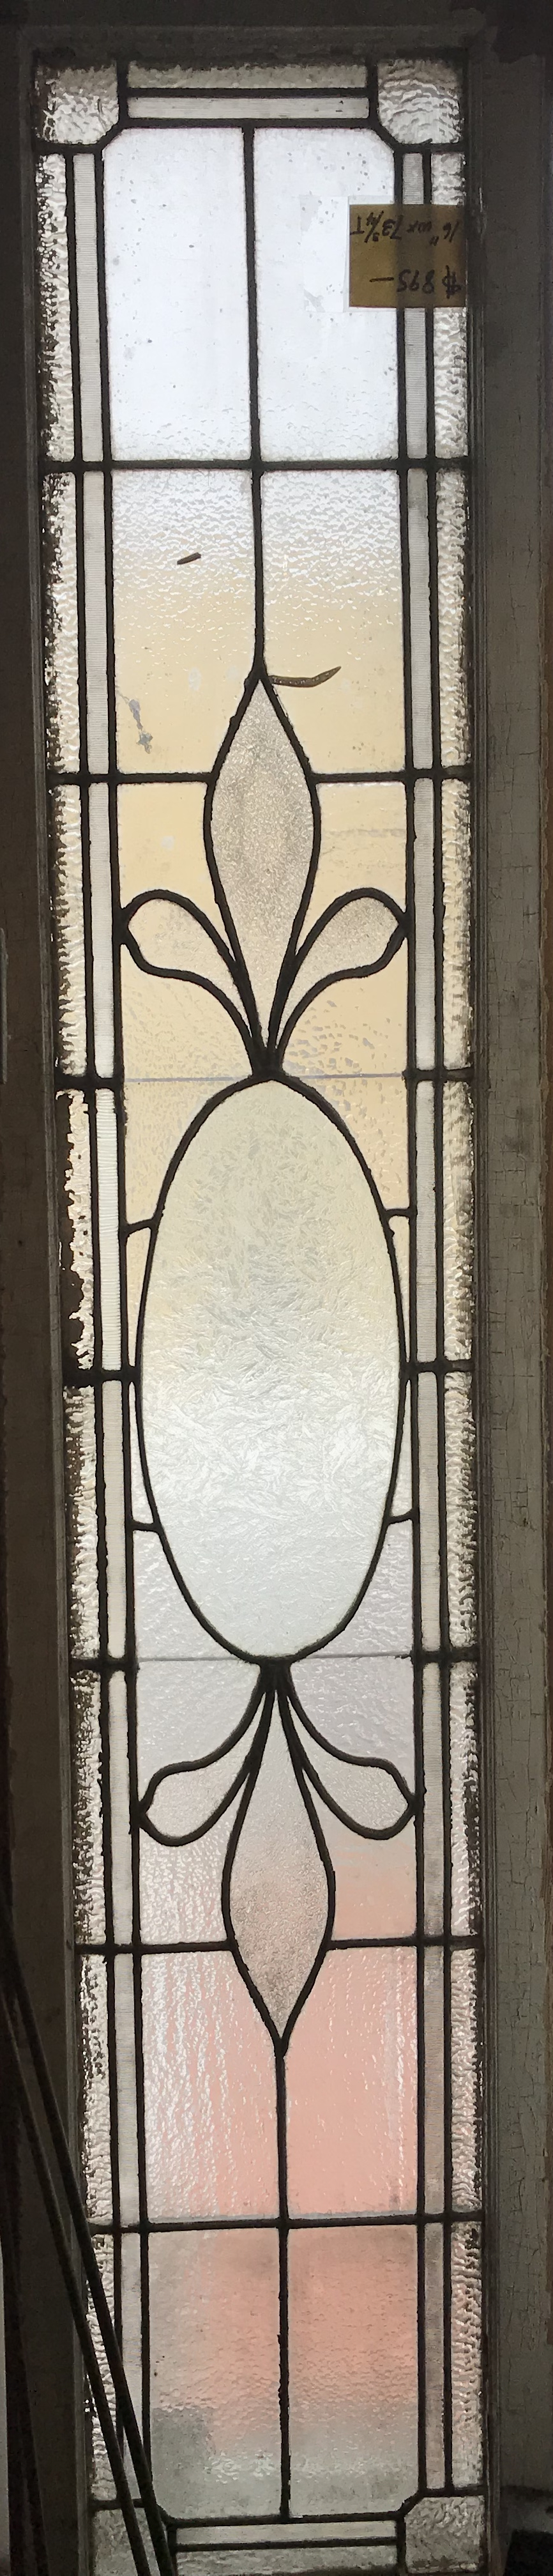 Antique privacy glass transom